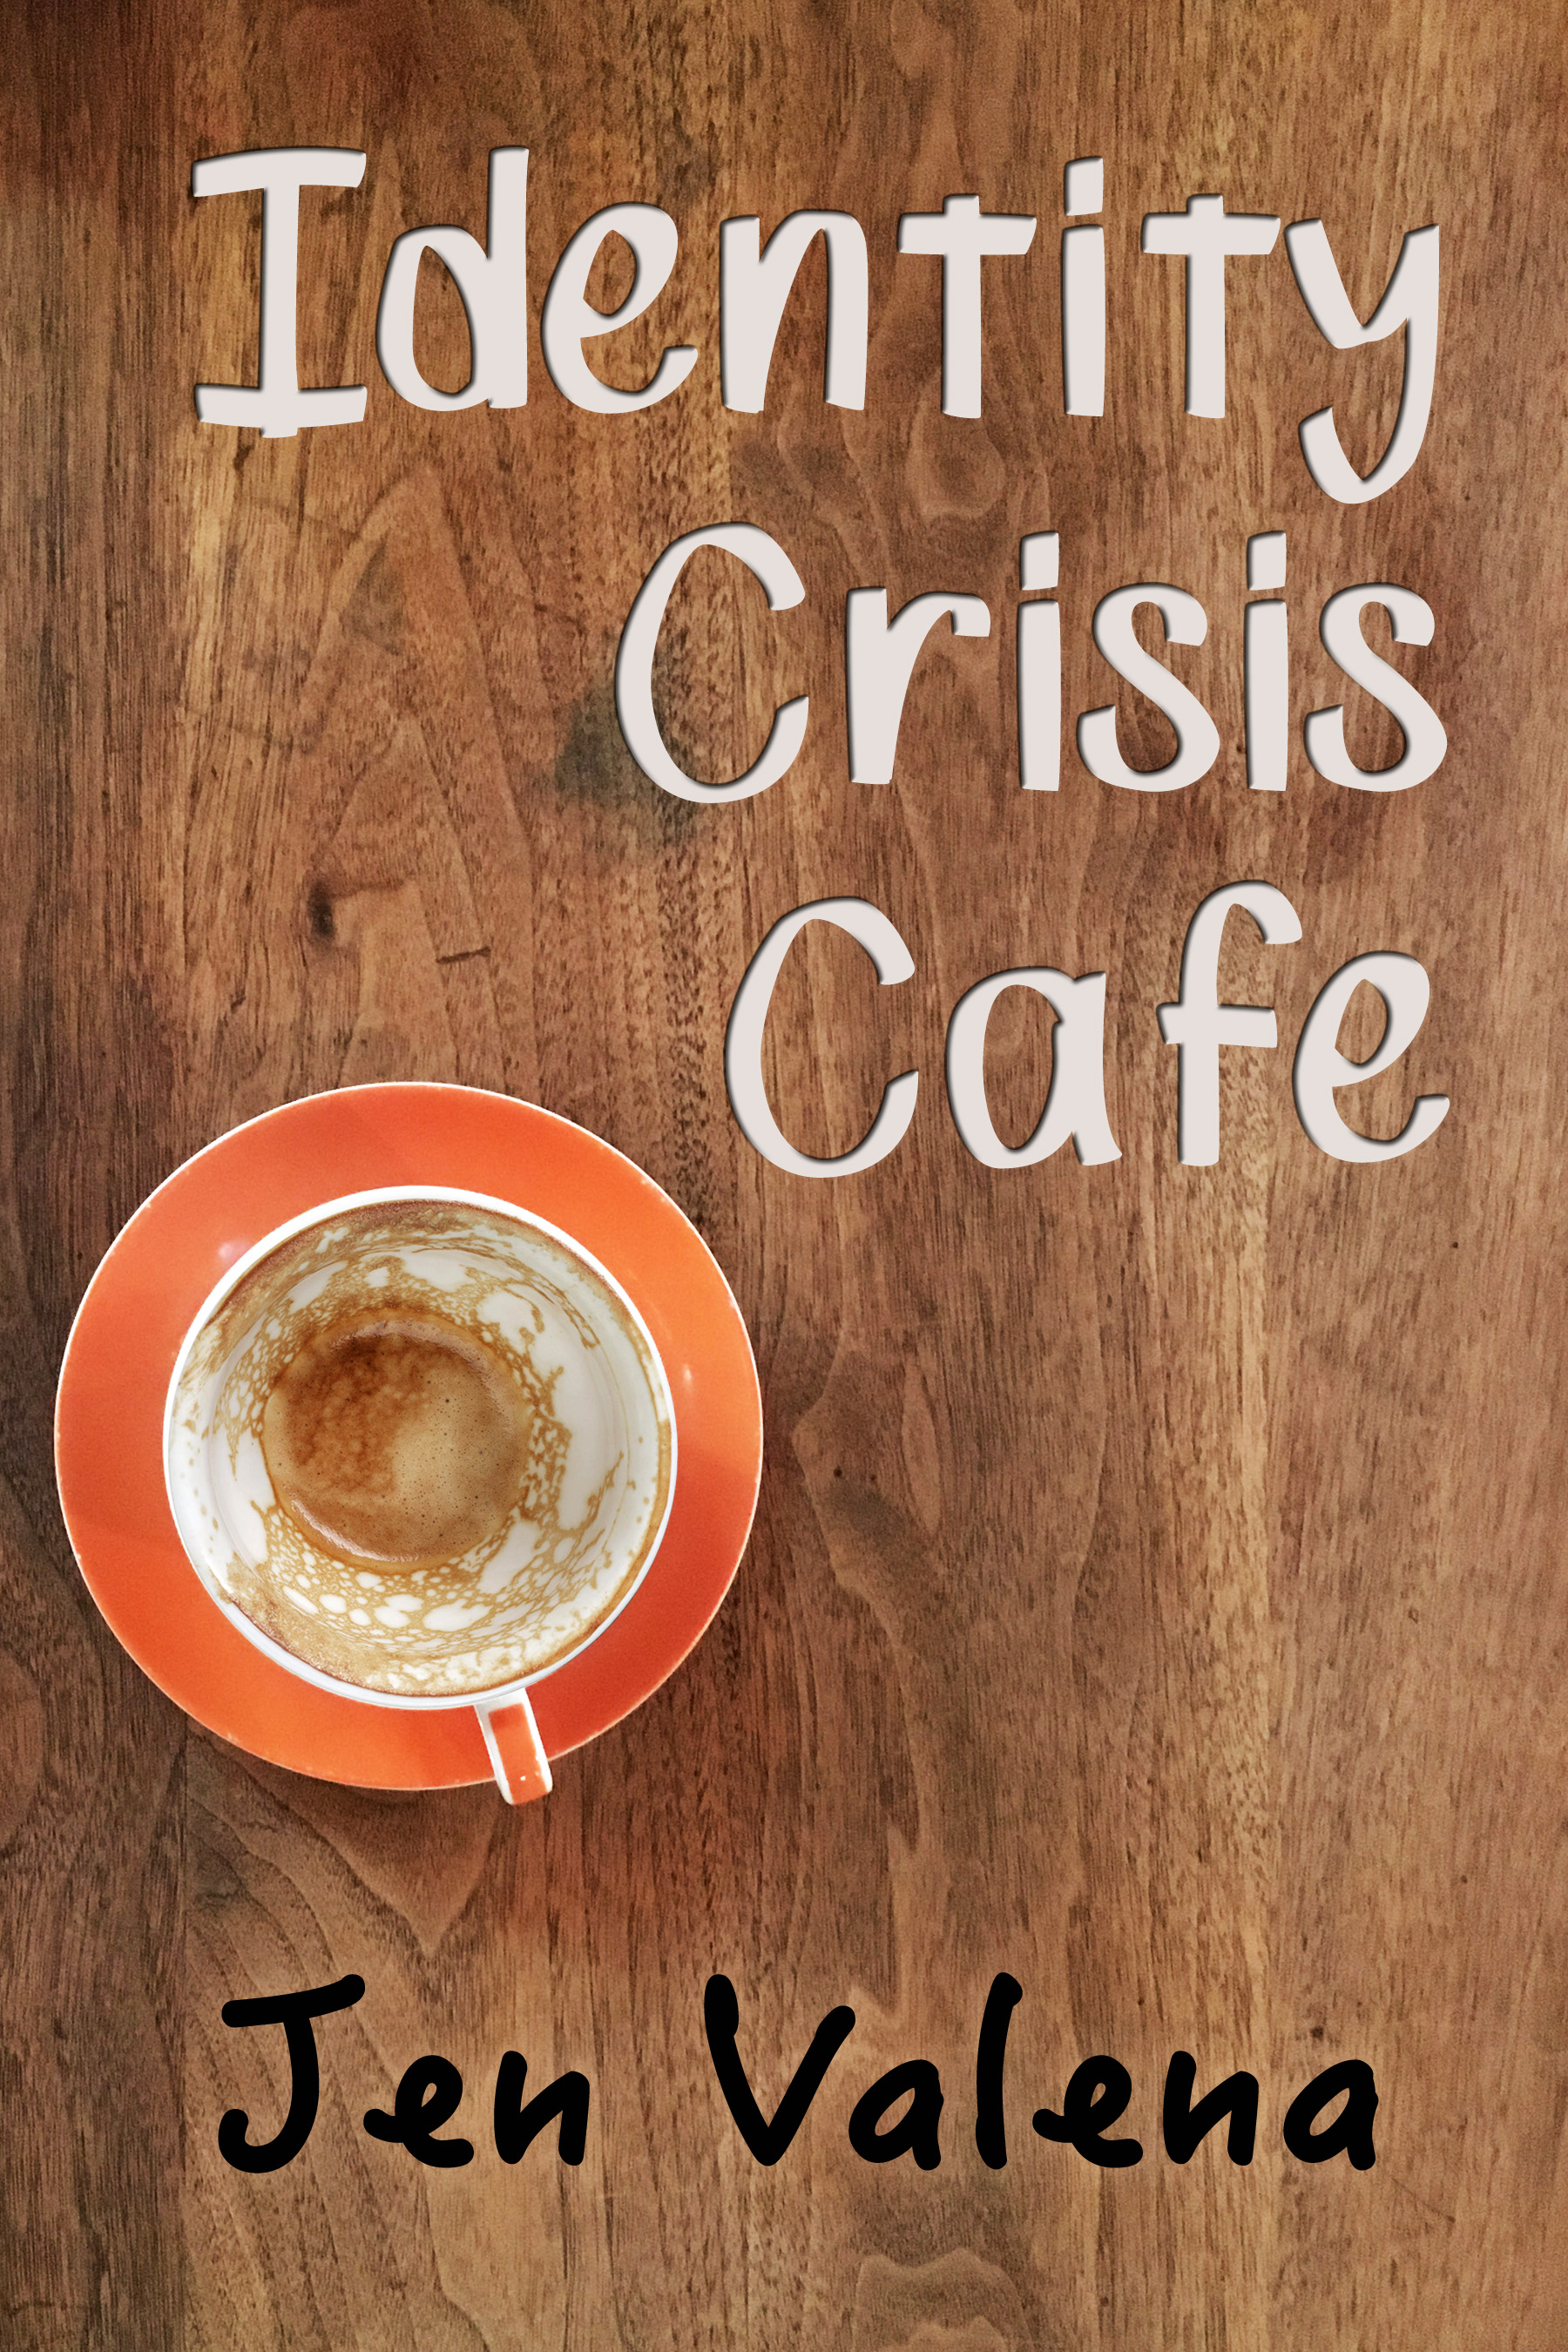 Marrs & The Identity Crisis Cafe